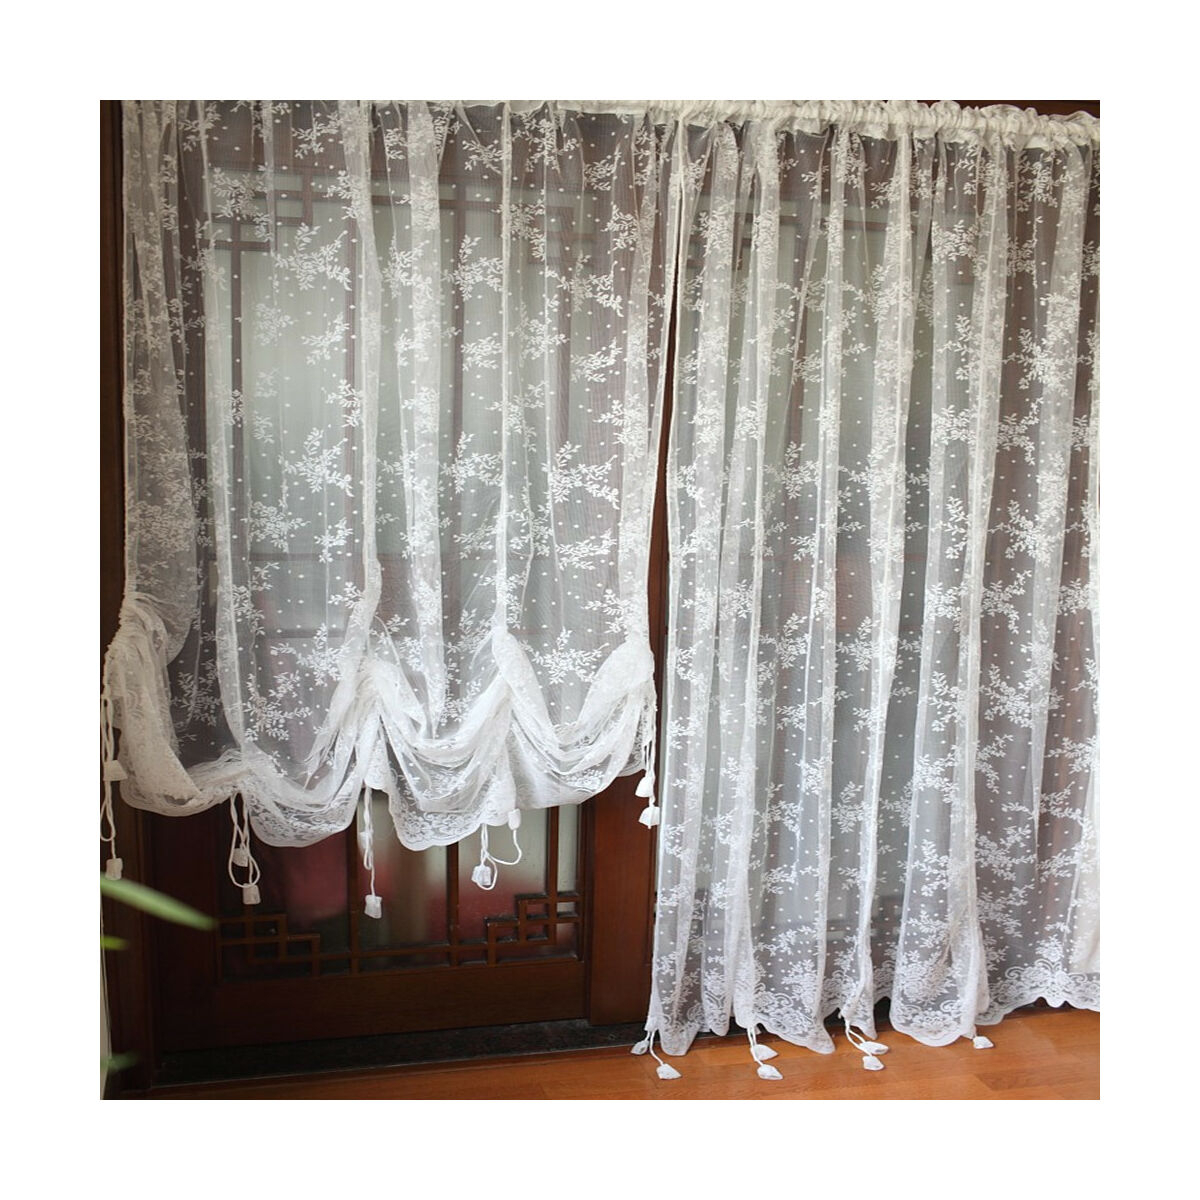 Drape Sheer Voile – Products On Ebay With Regard To Sheer Voile Ruffled Tier Window Curtain Panels (View 10 of 20)